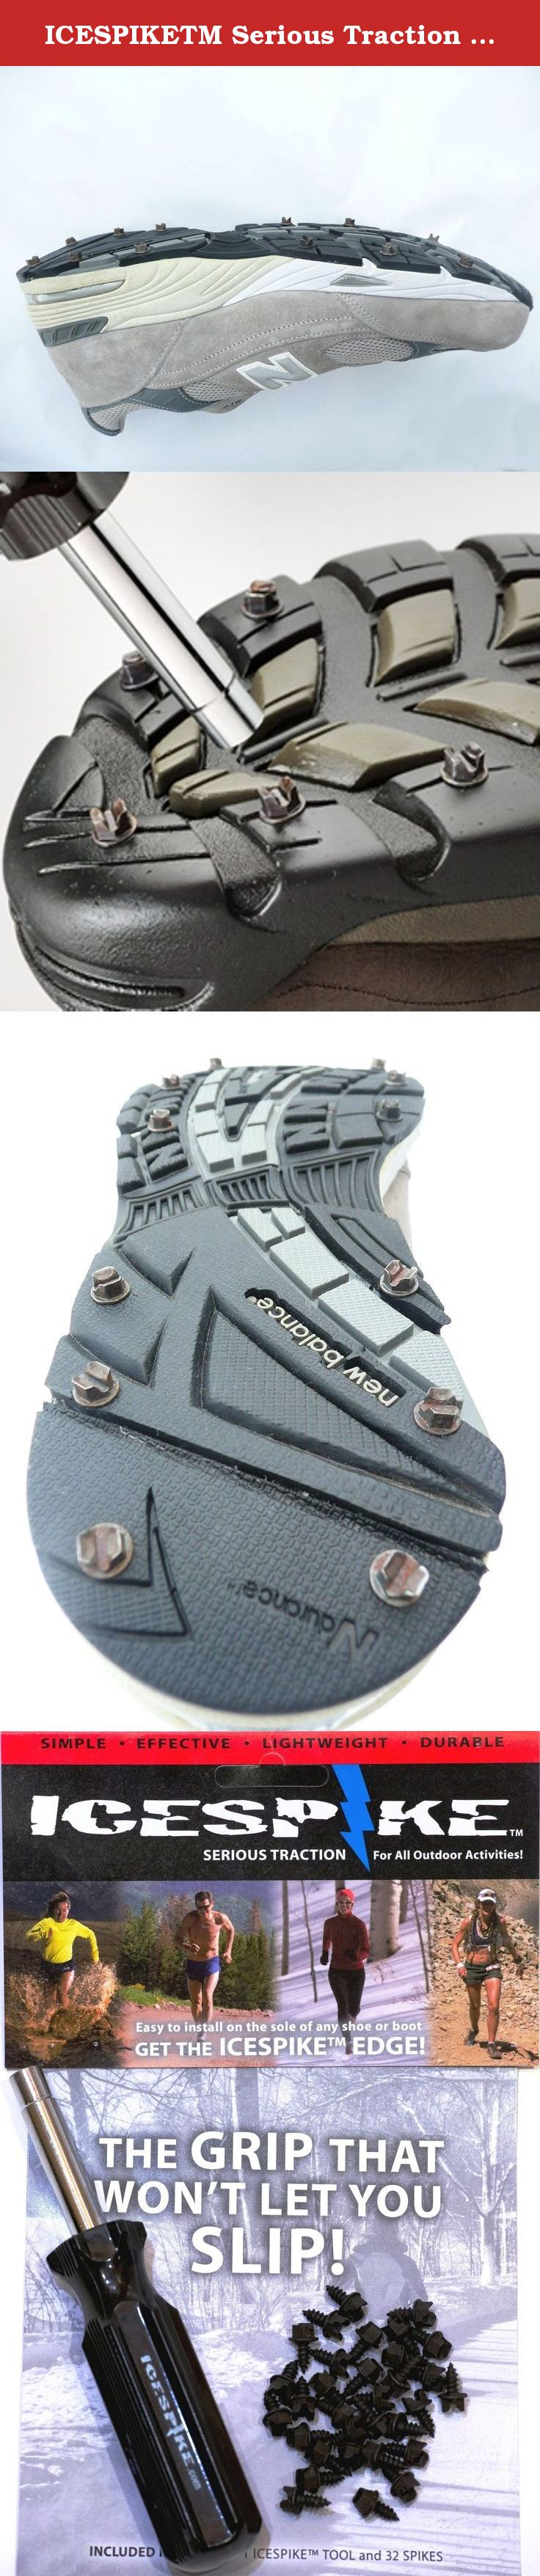 Chains or Coils. No Straps ICESPIKETM Serious Traction for Any Outdoor Activity